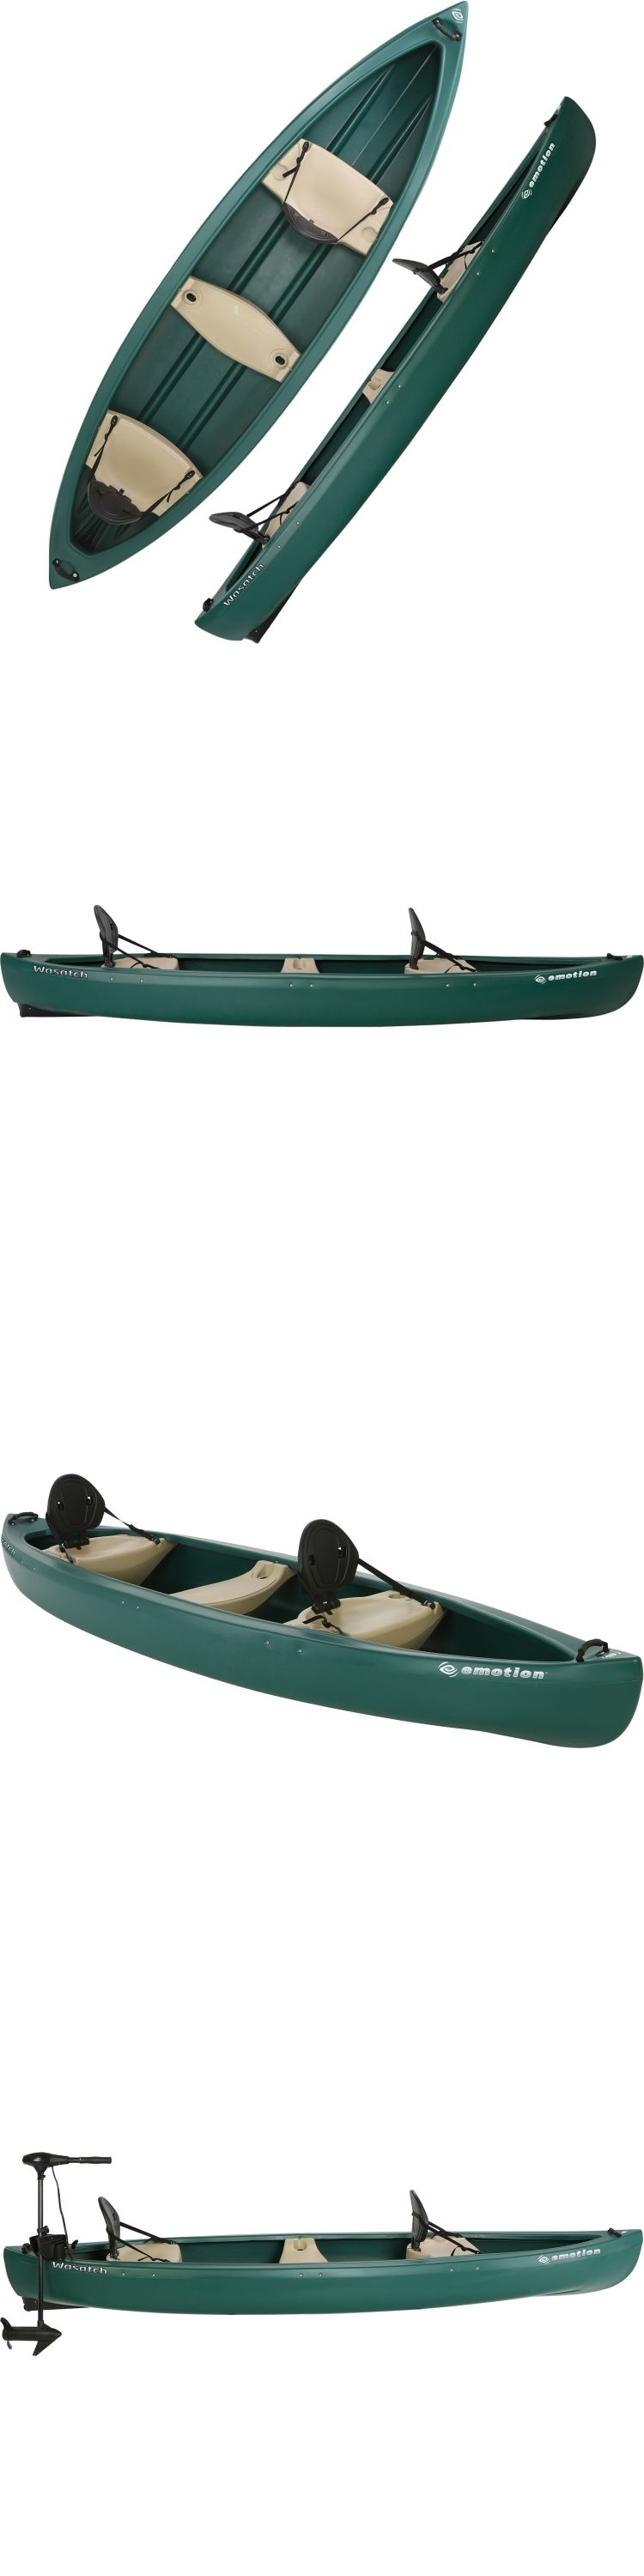 Canoes 23800 Emotion Wasatch Canoe Brand New Free Shipping Buy It Now Only 569 19 Canoe Brand New Brand